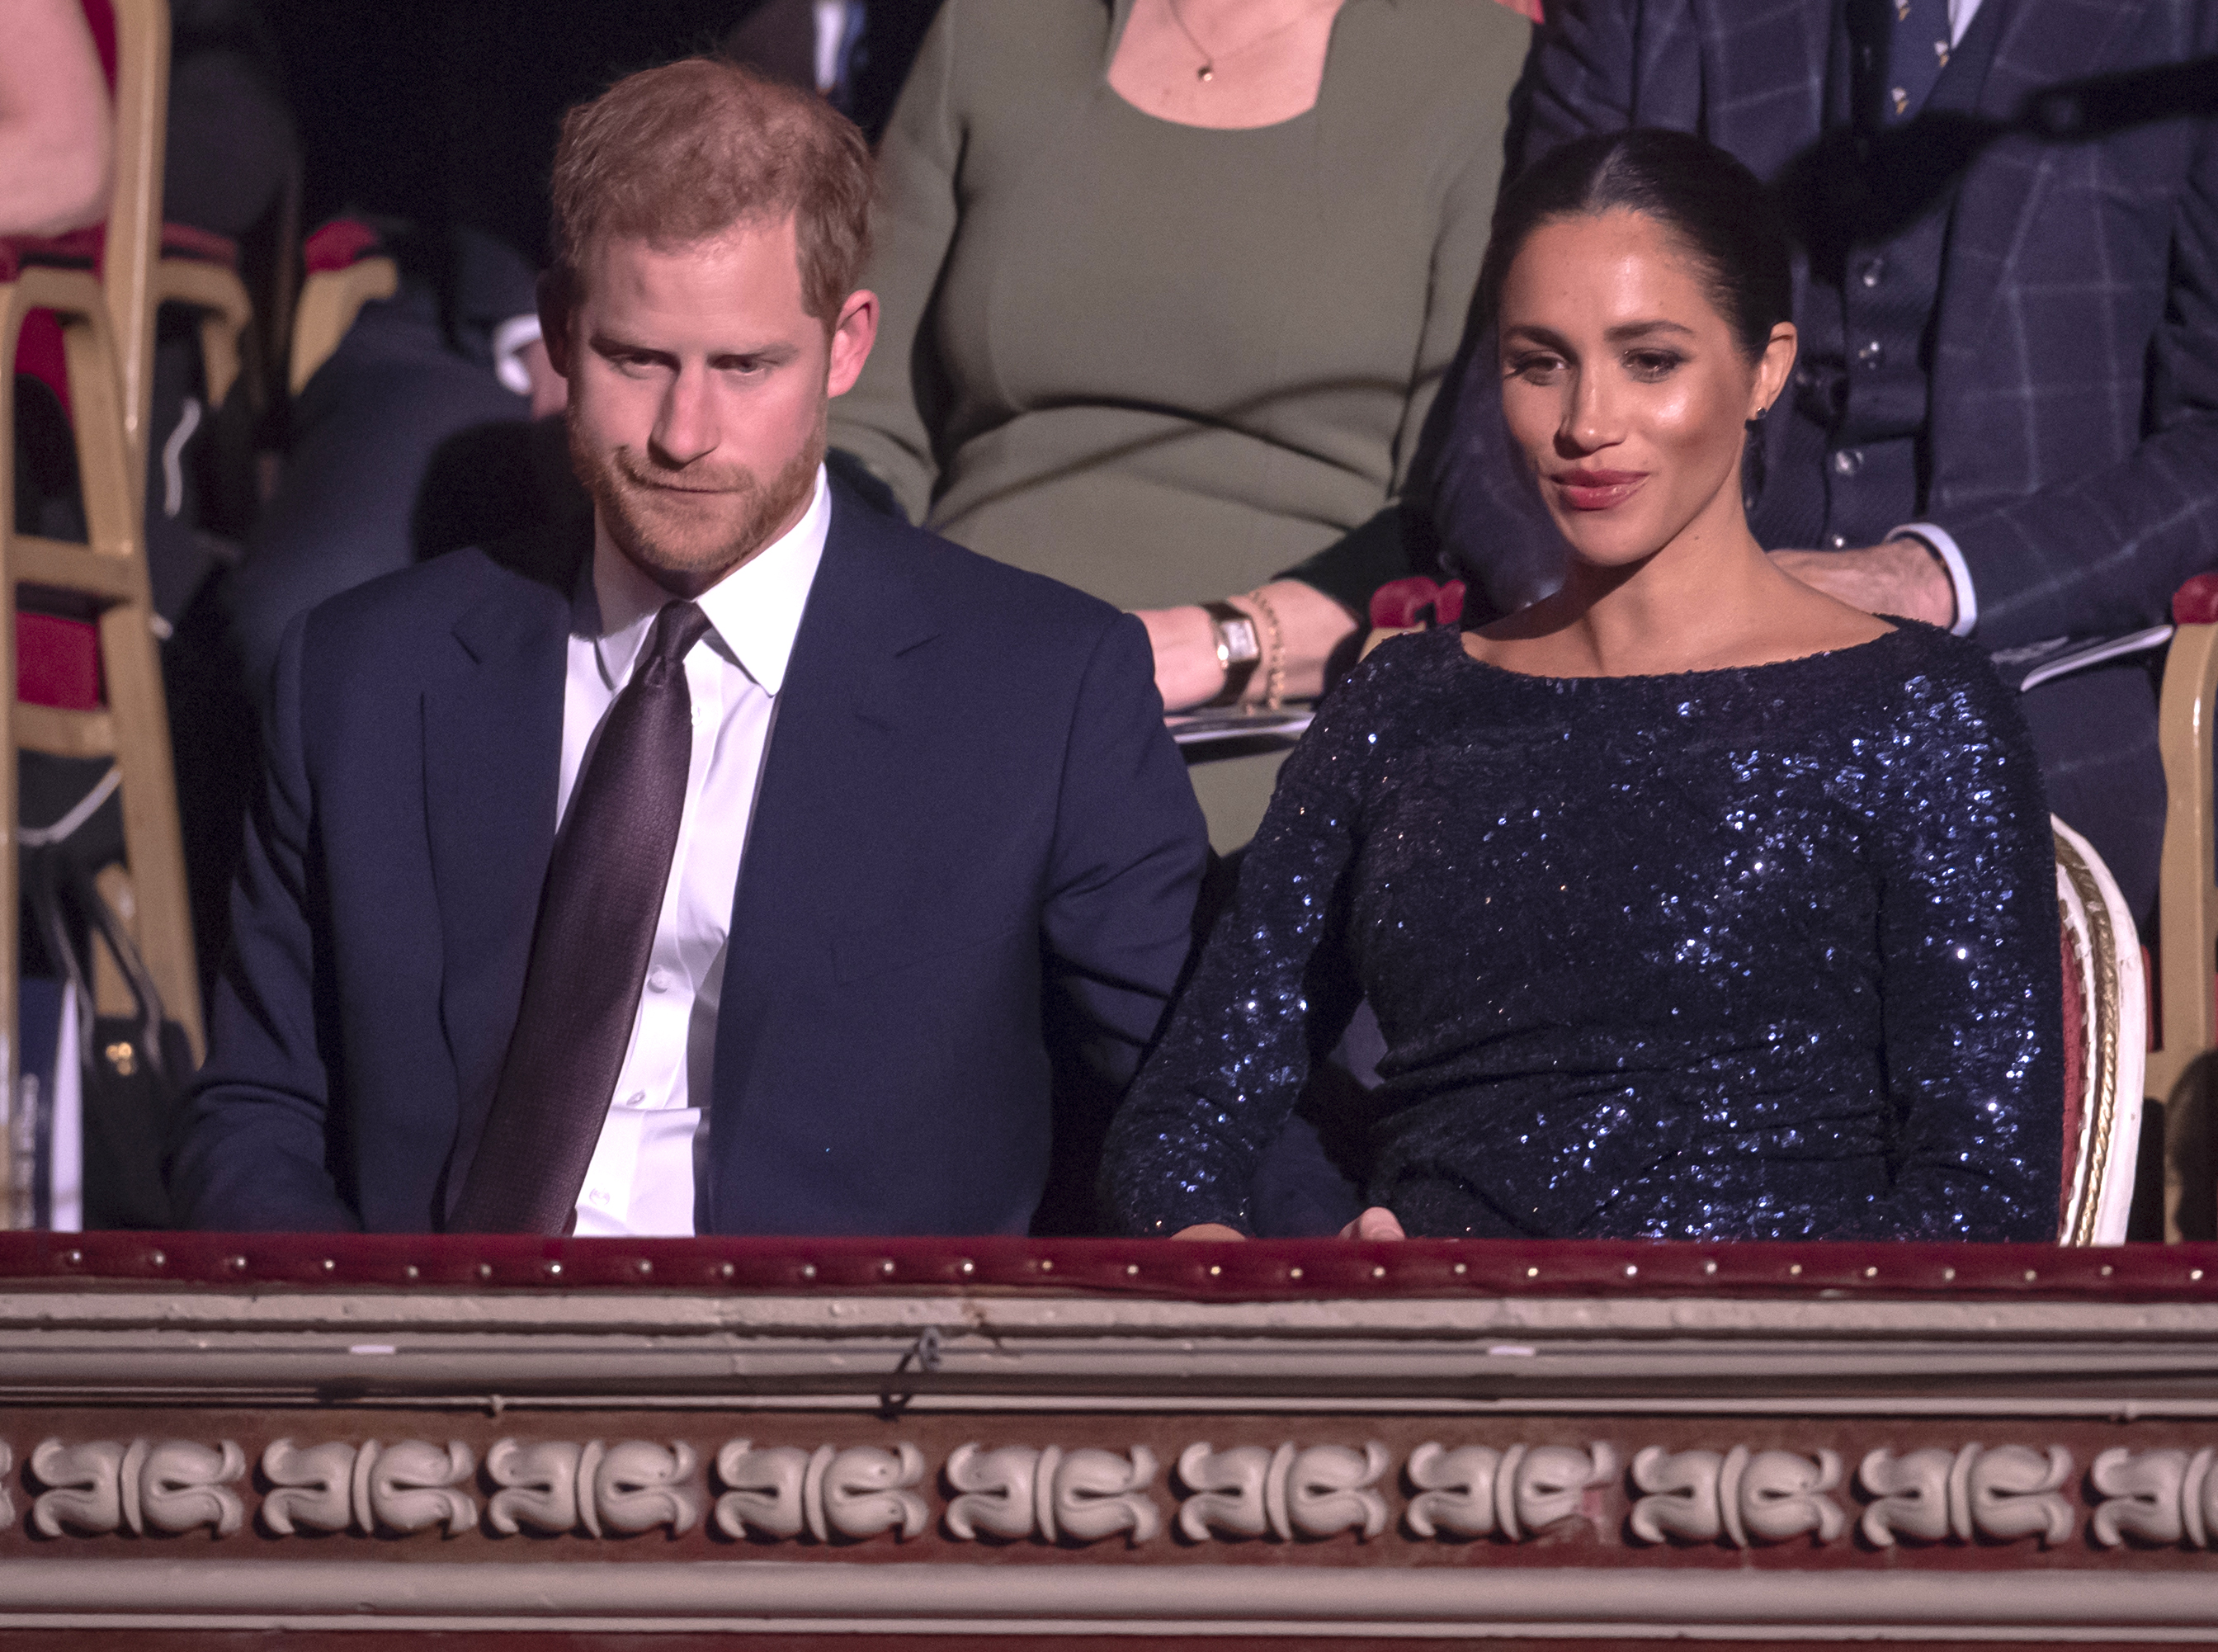 The Times Prince Harry And Meghan Markle Were Rumored To Be